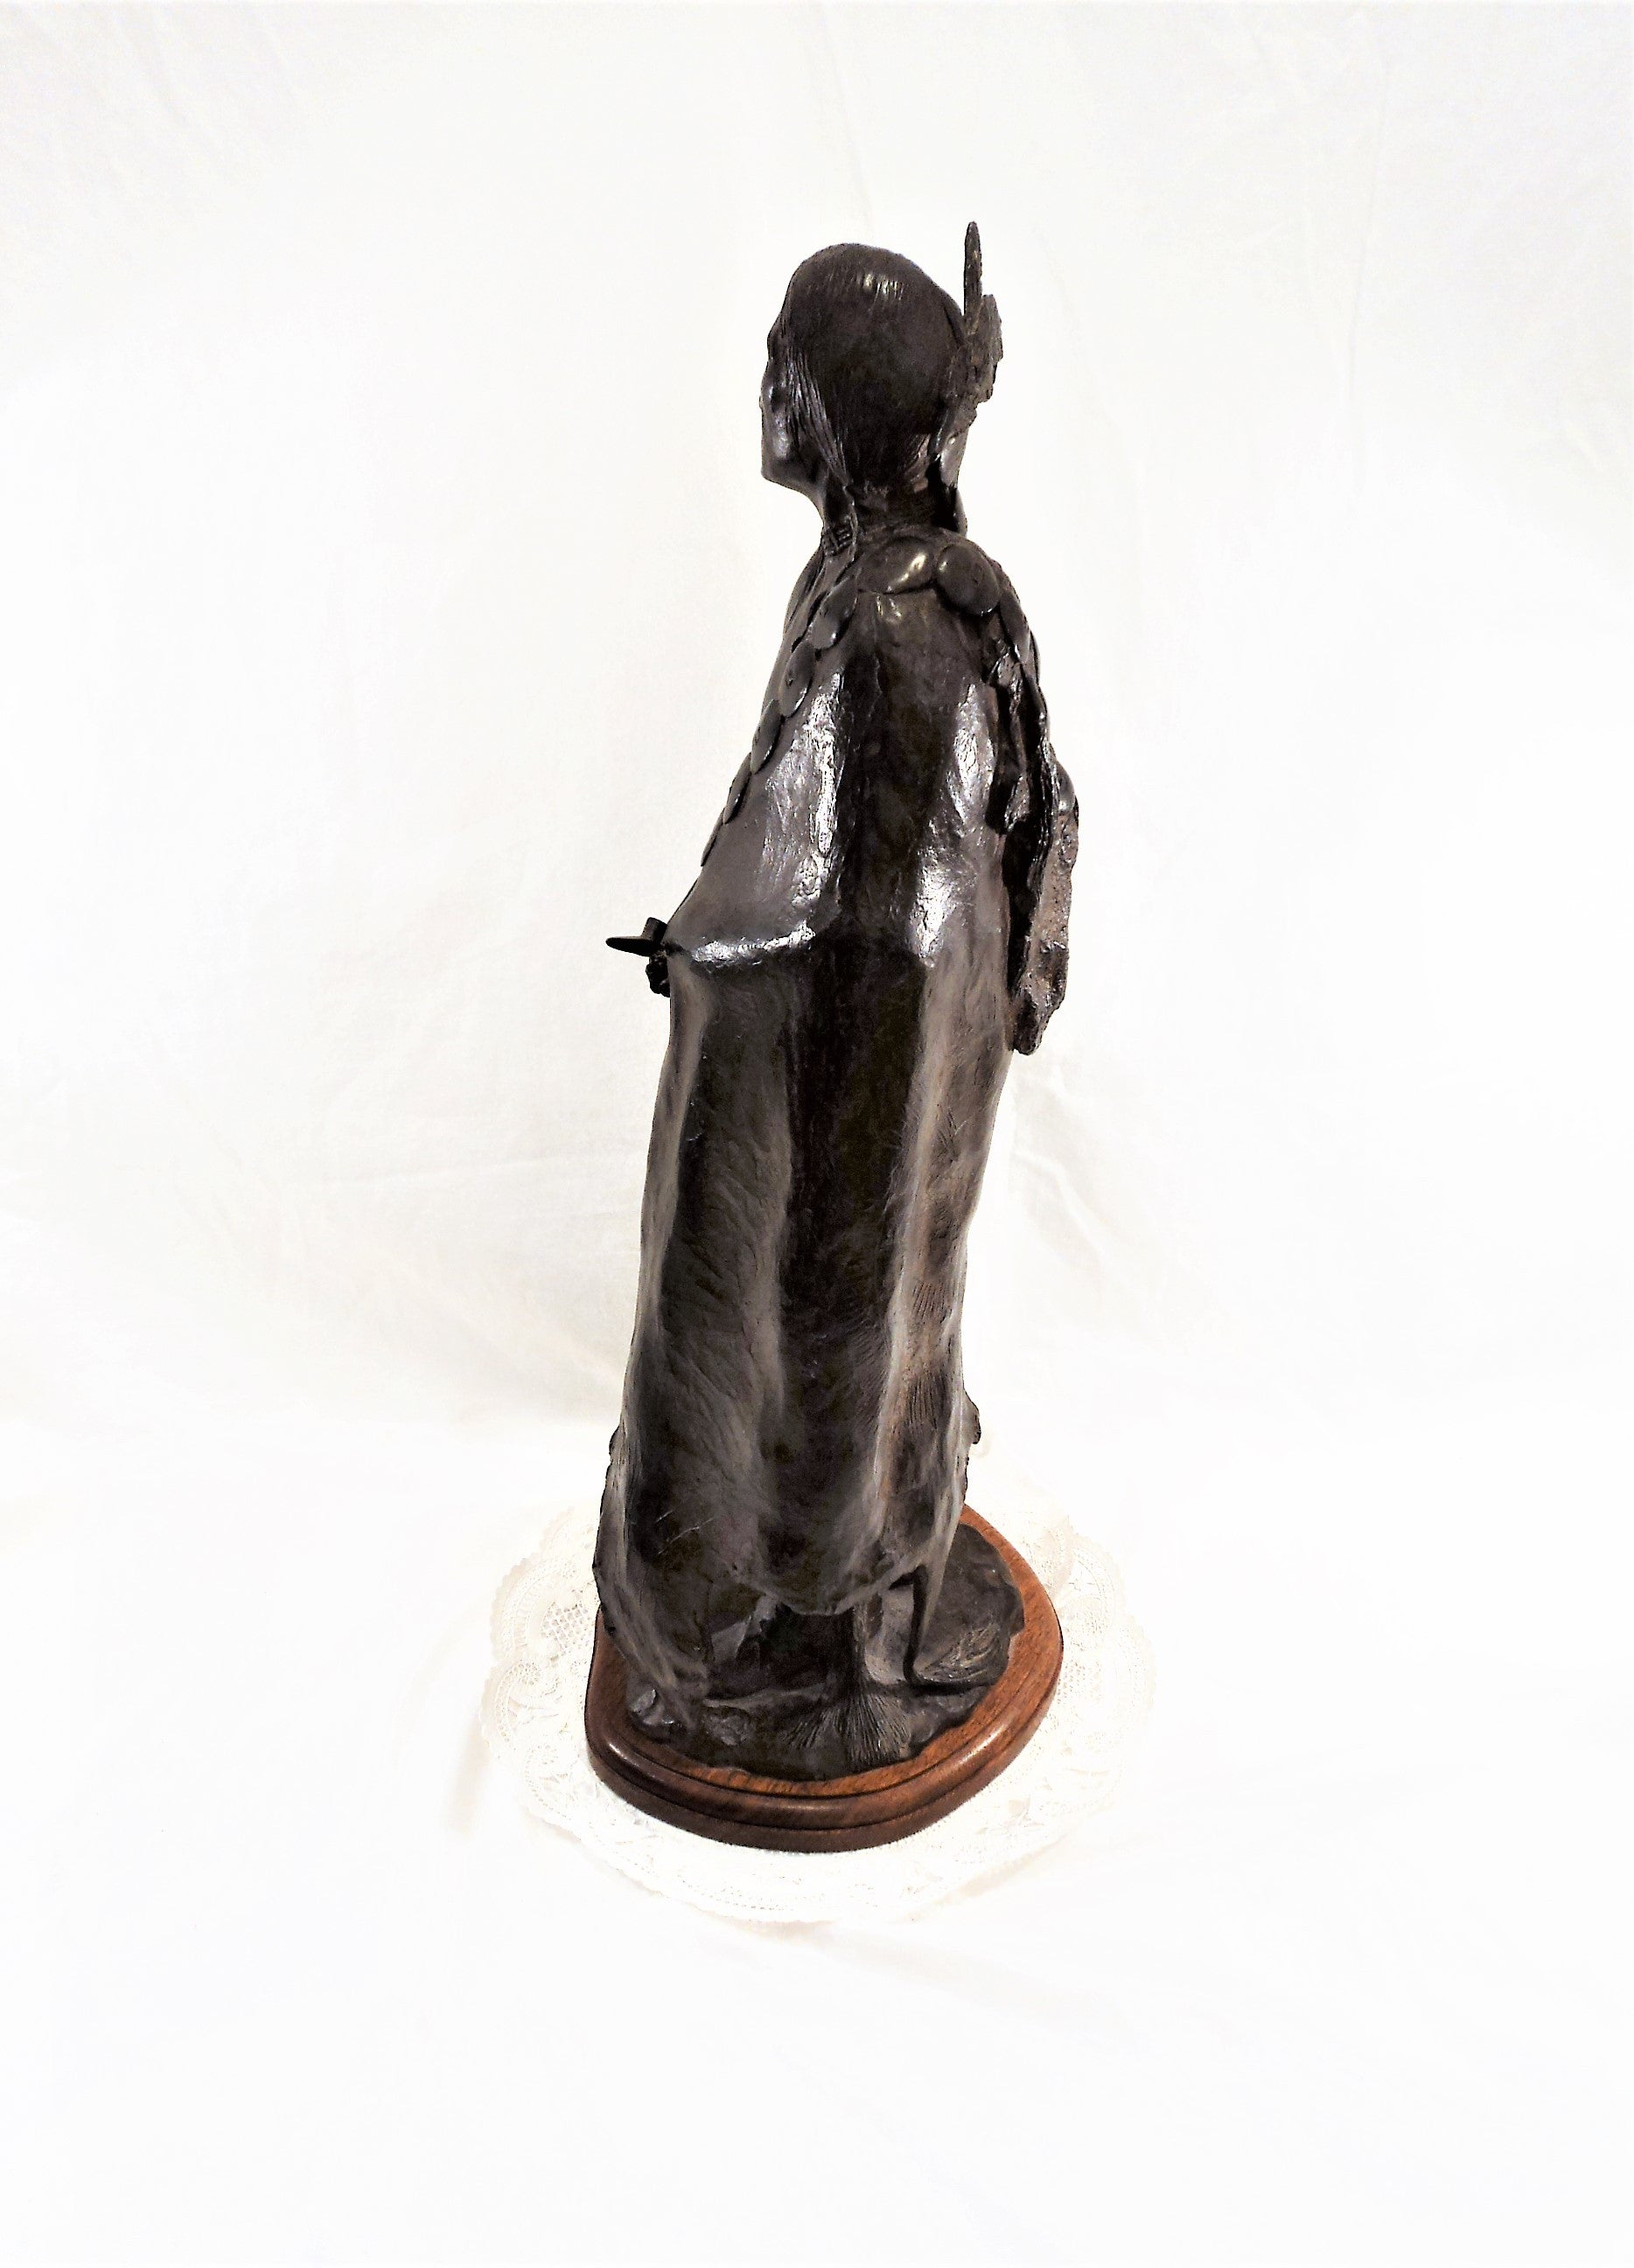 Signed Limited Edition Bronze Sculpture